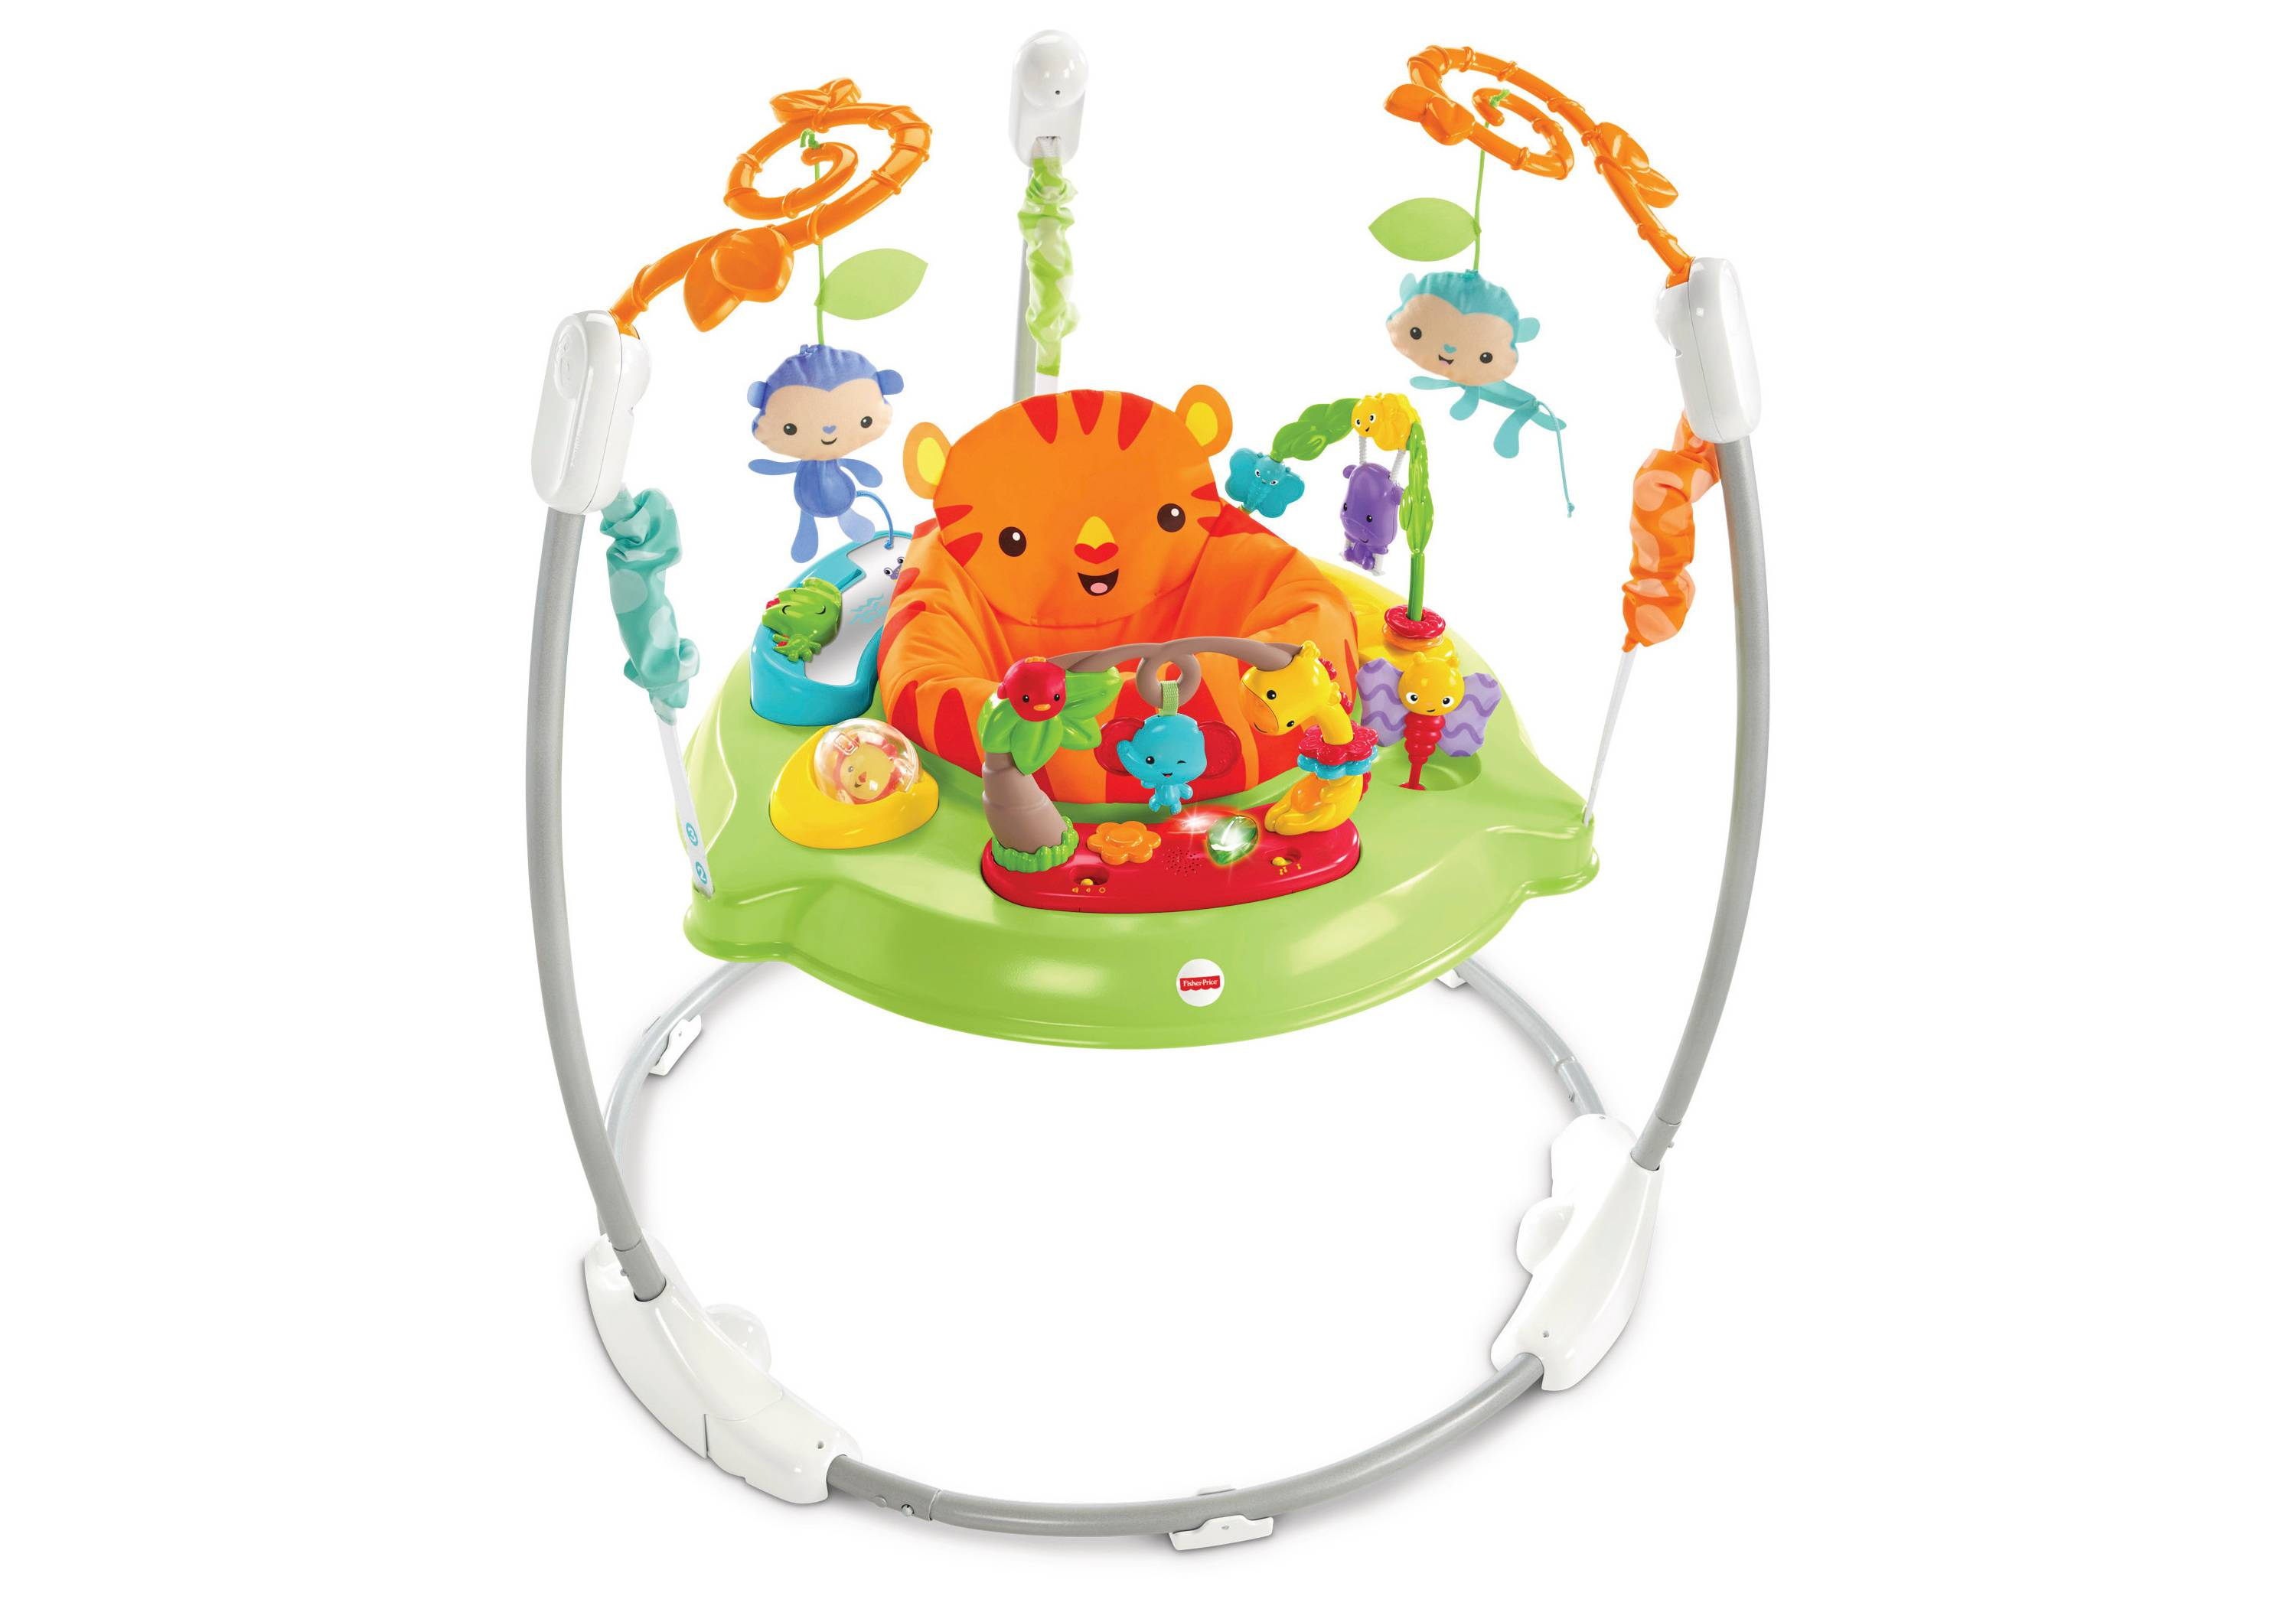 c86afa801 Fisher Price Rainforest Jumperoo Baby Bouncer Entertainer